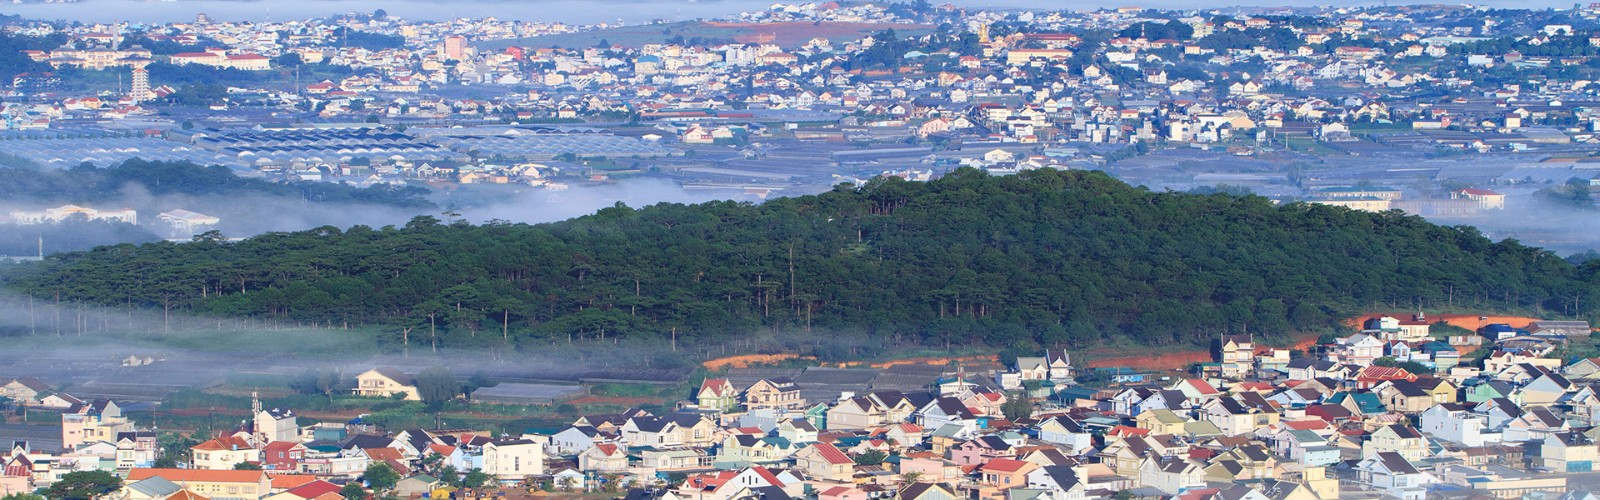 Dalat Short Stay Tour | Wendy Wu Tours